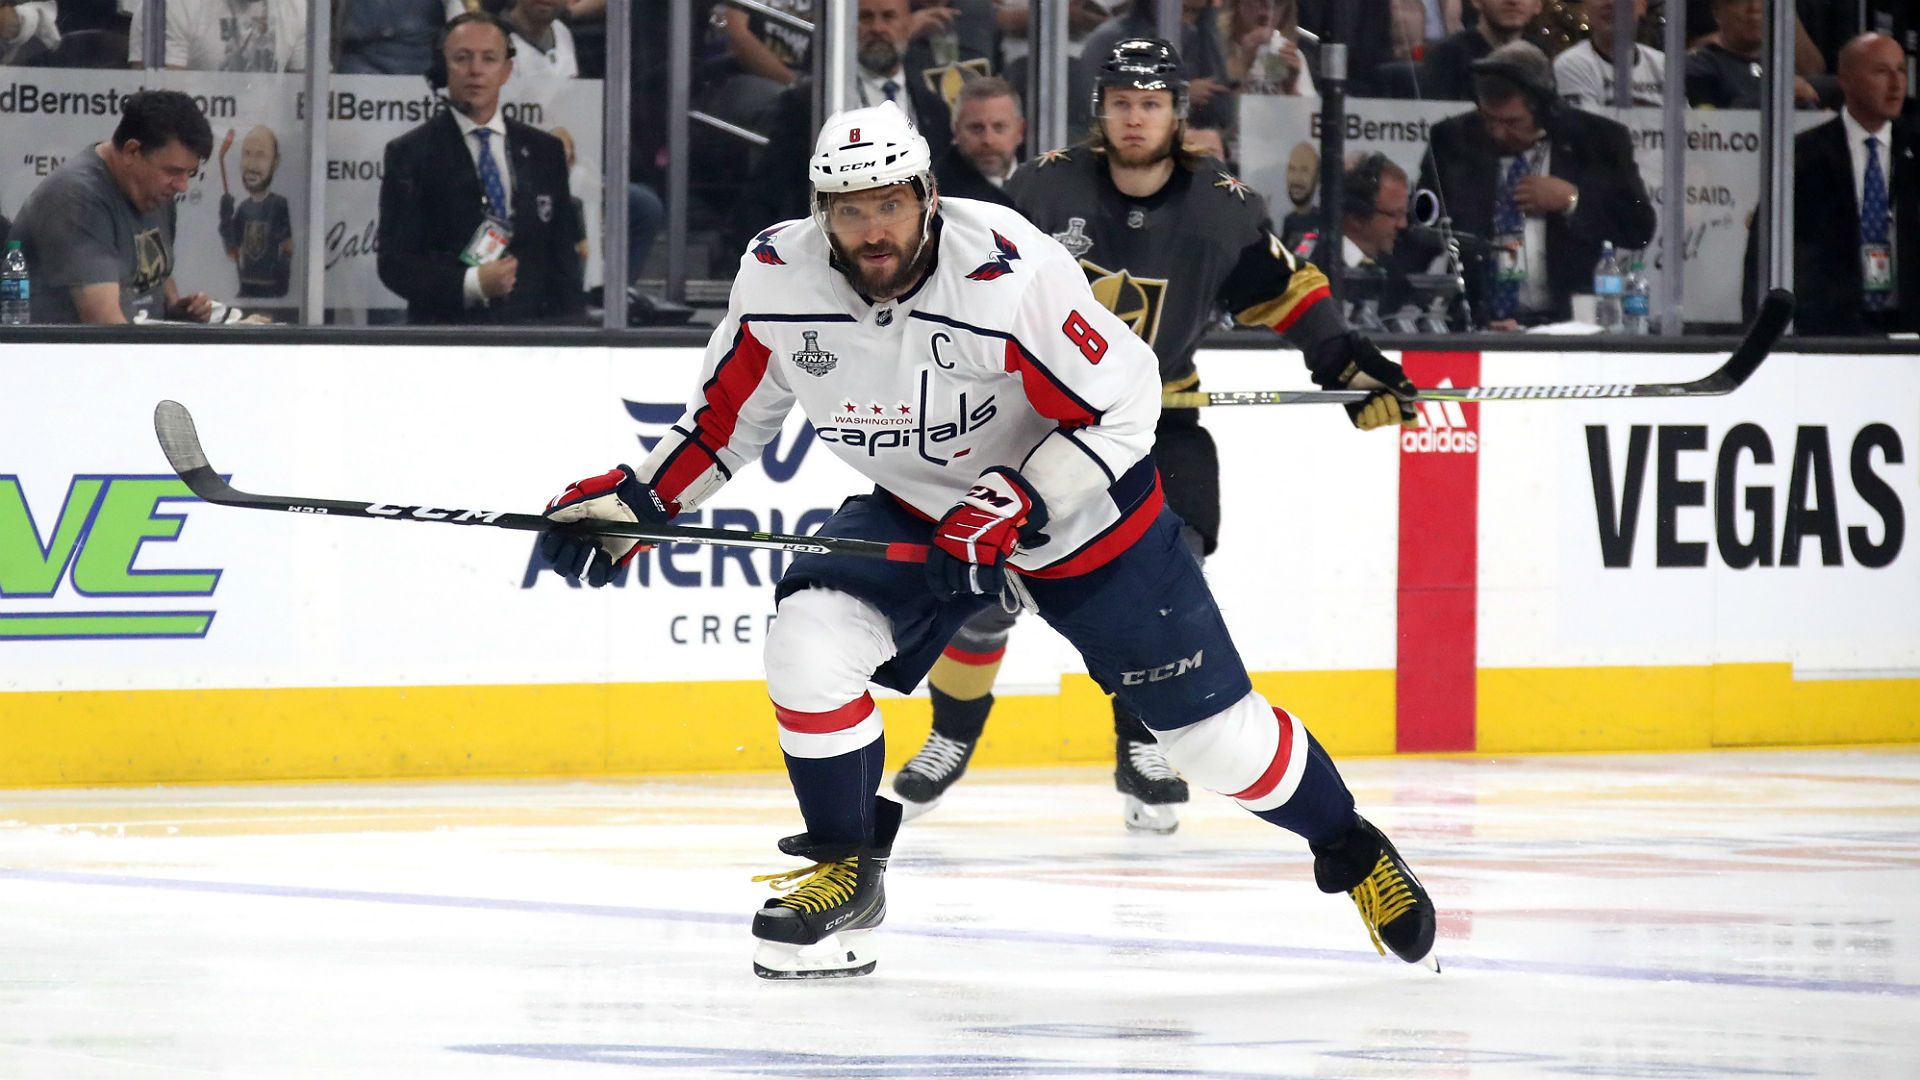 Alex Ovechkin: Caps treating every game like it's their last